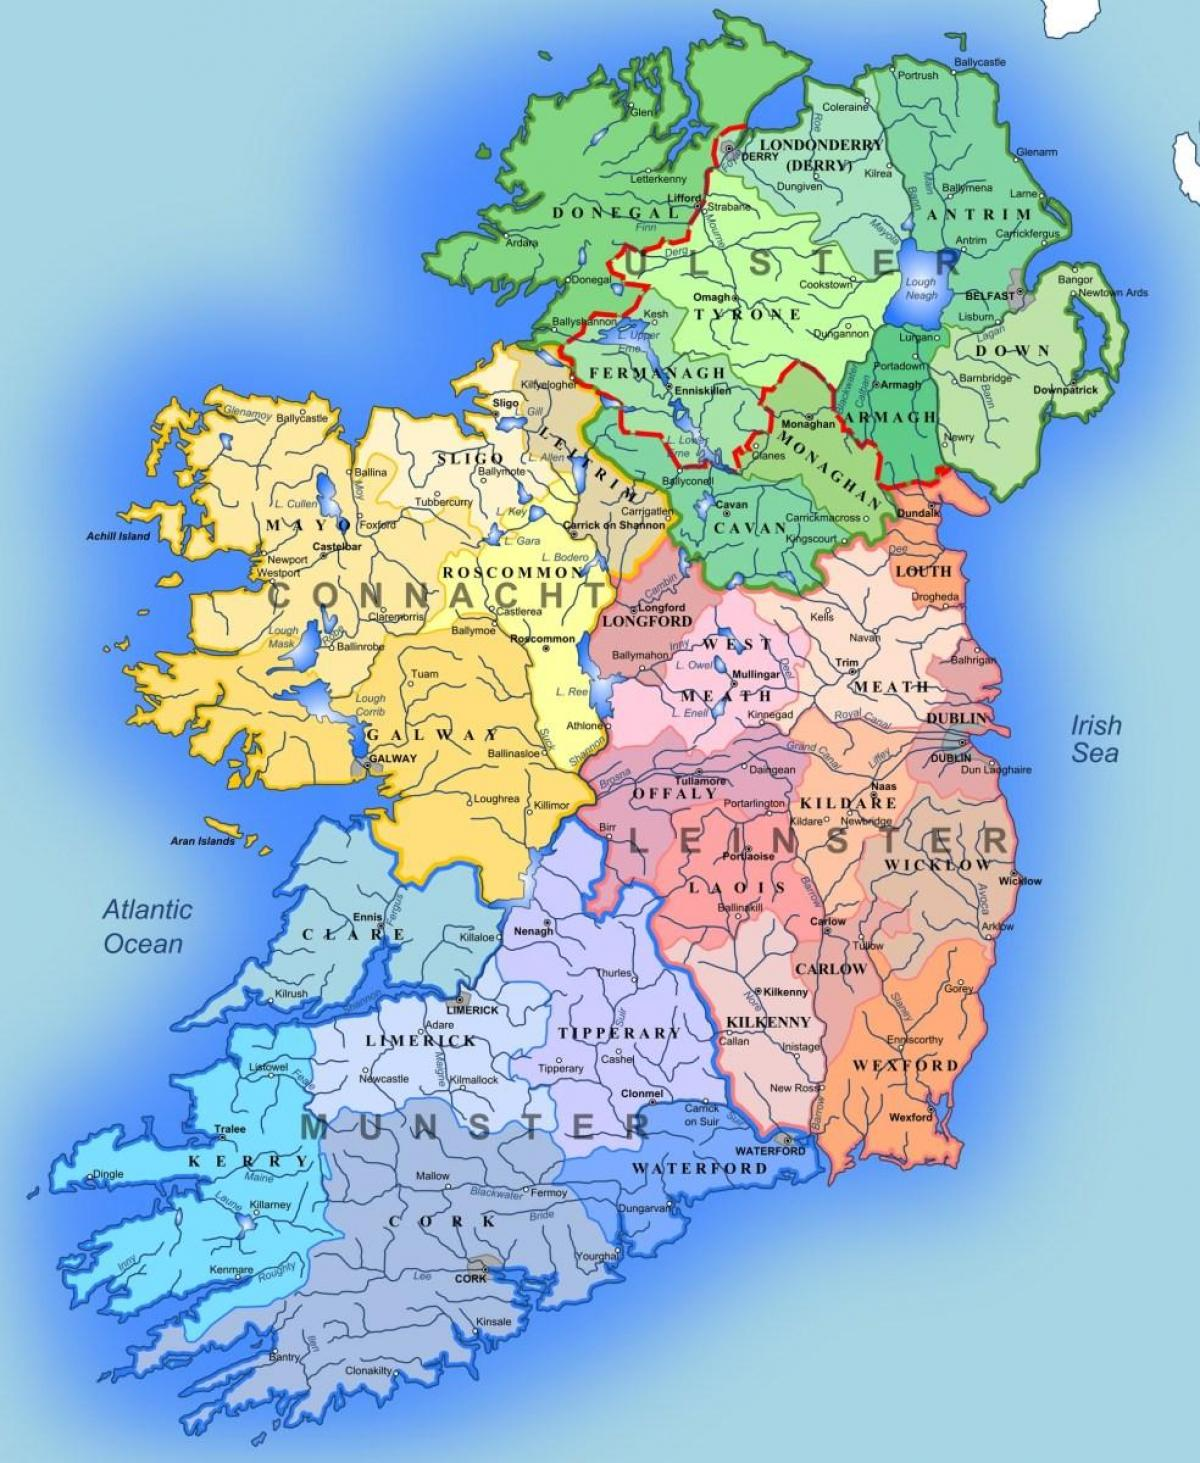 Map Of Rivers In Ireland.Rivers Of Ireland Map For Kids Map Of Rivers Of Ireland Map For